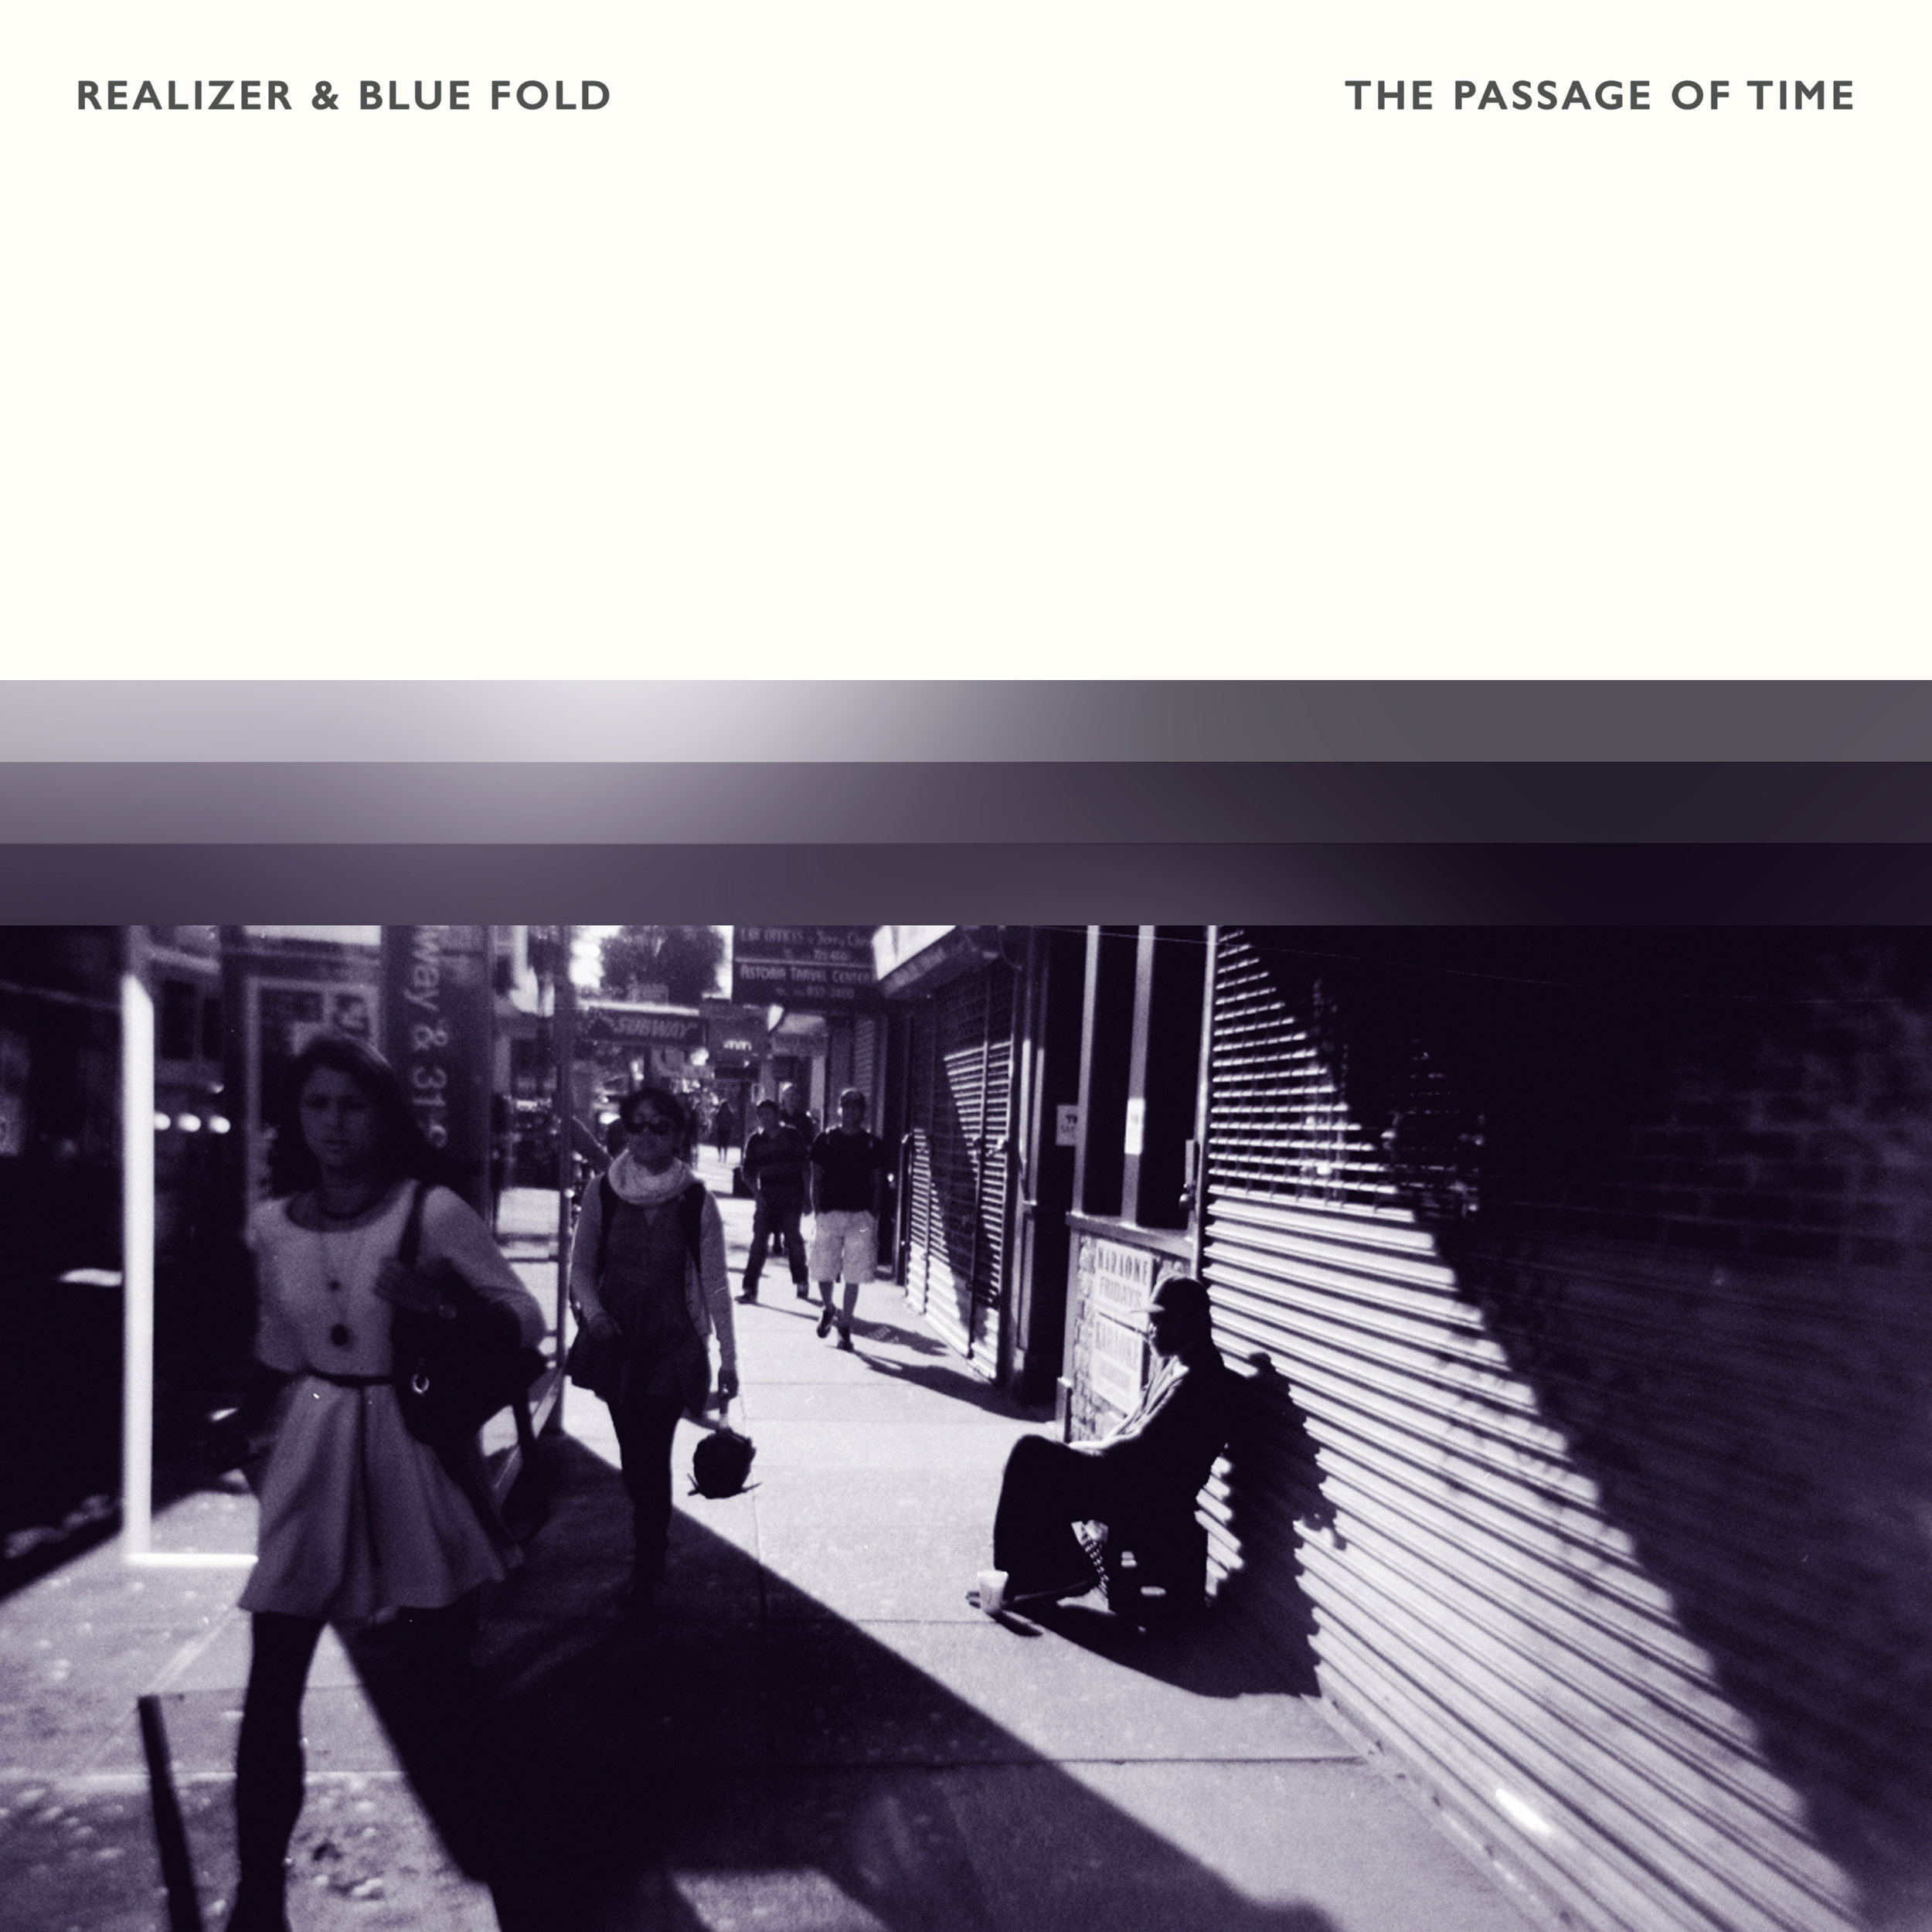 Blue Fold & Realizer - The Passage Of Time